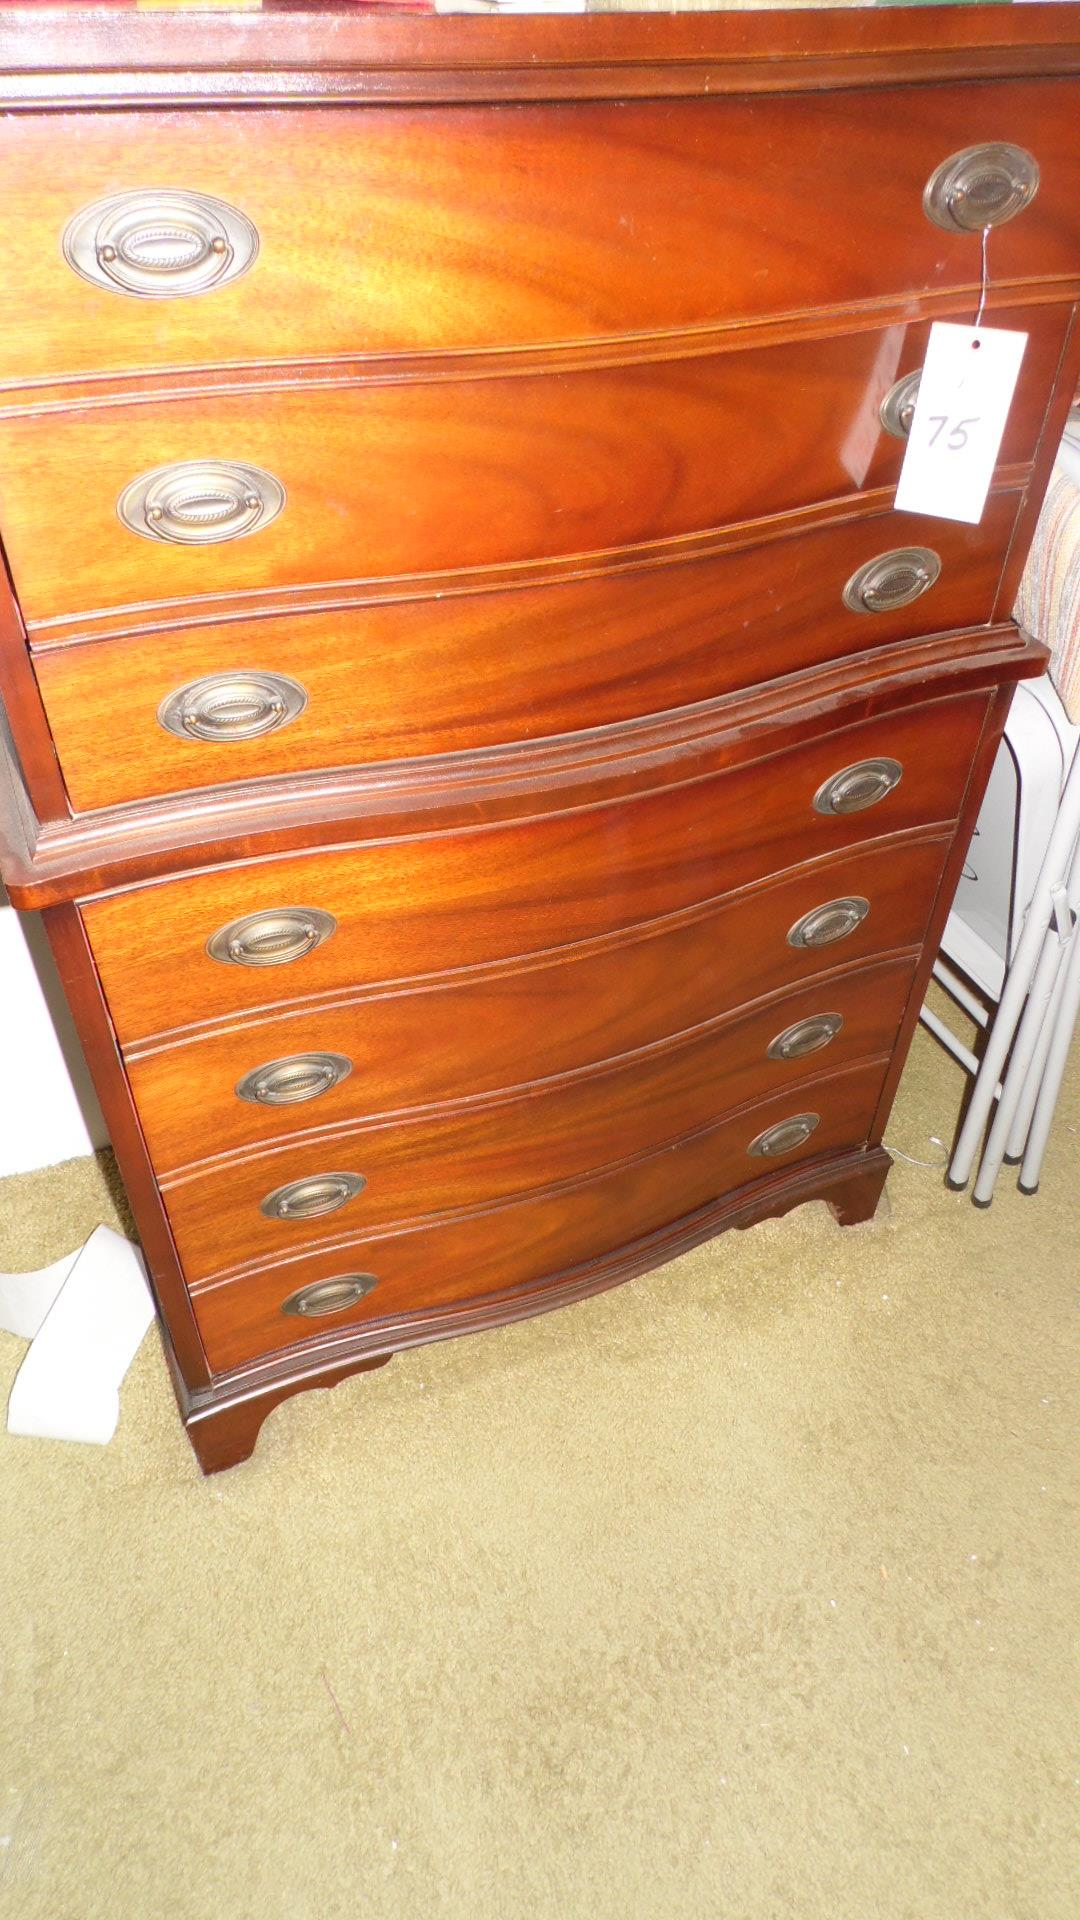 3-PIECE CHEST ON CHEST & 2-NITE STANDS - Image 2 of 4